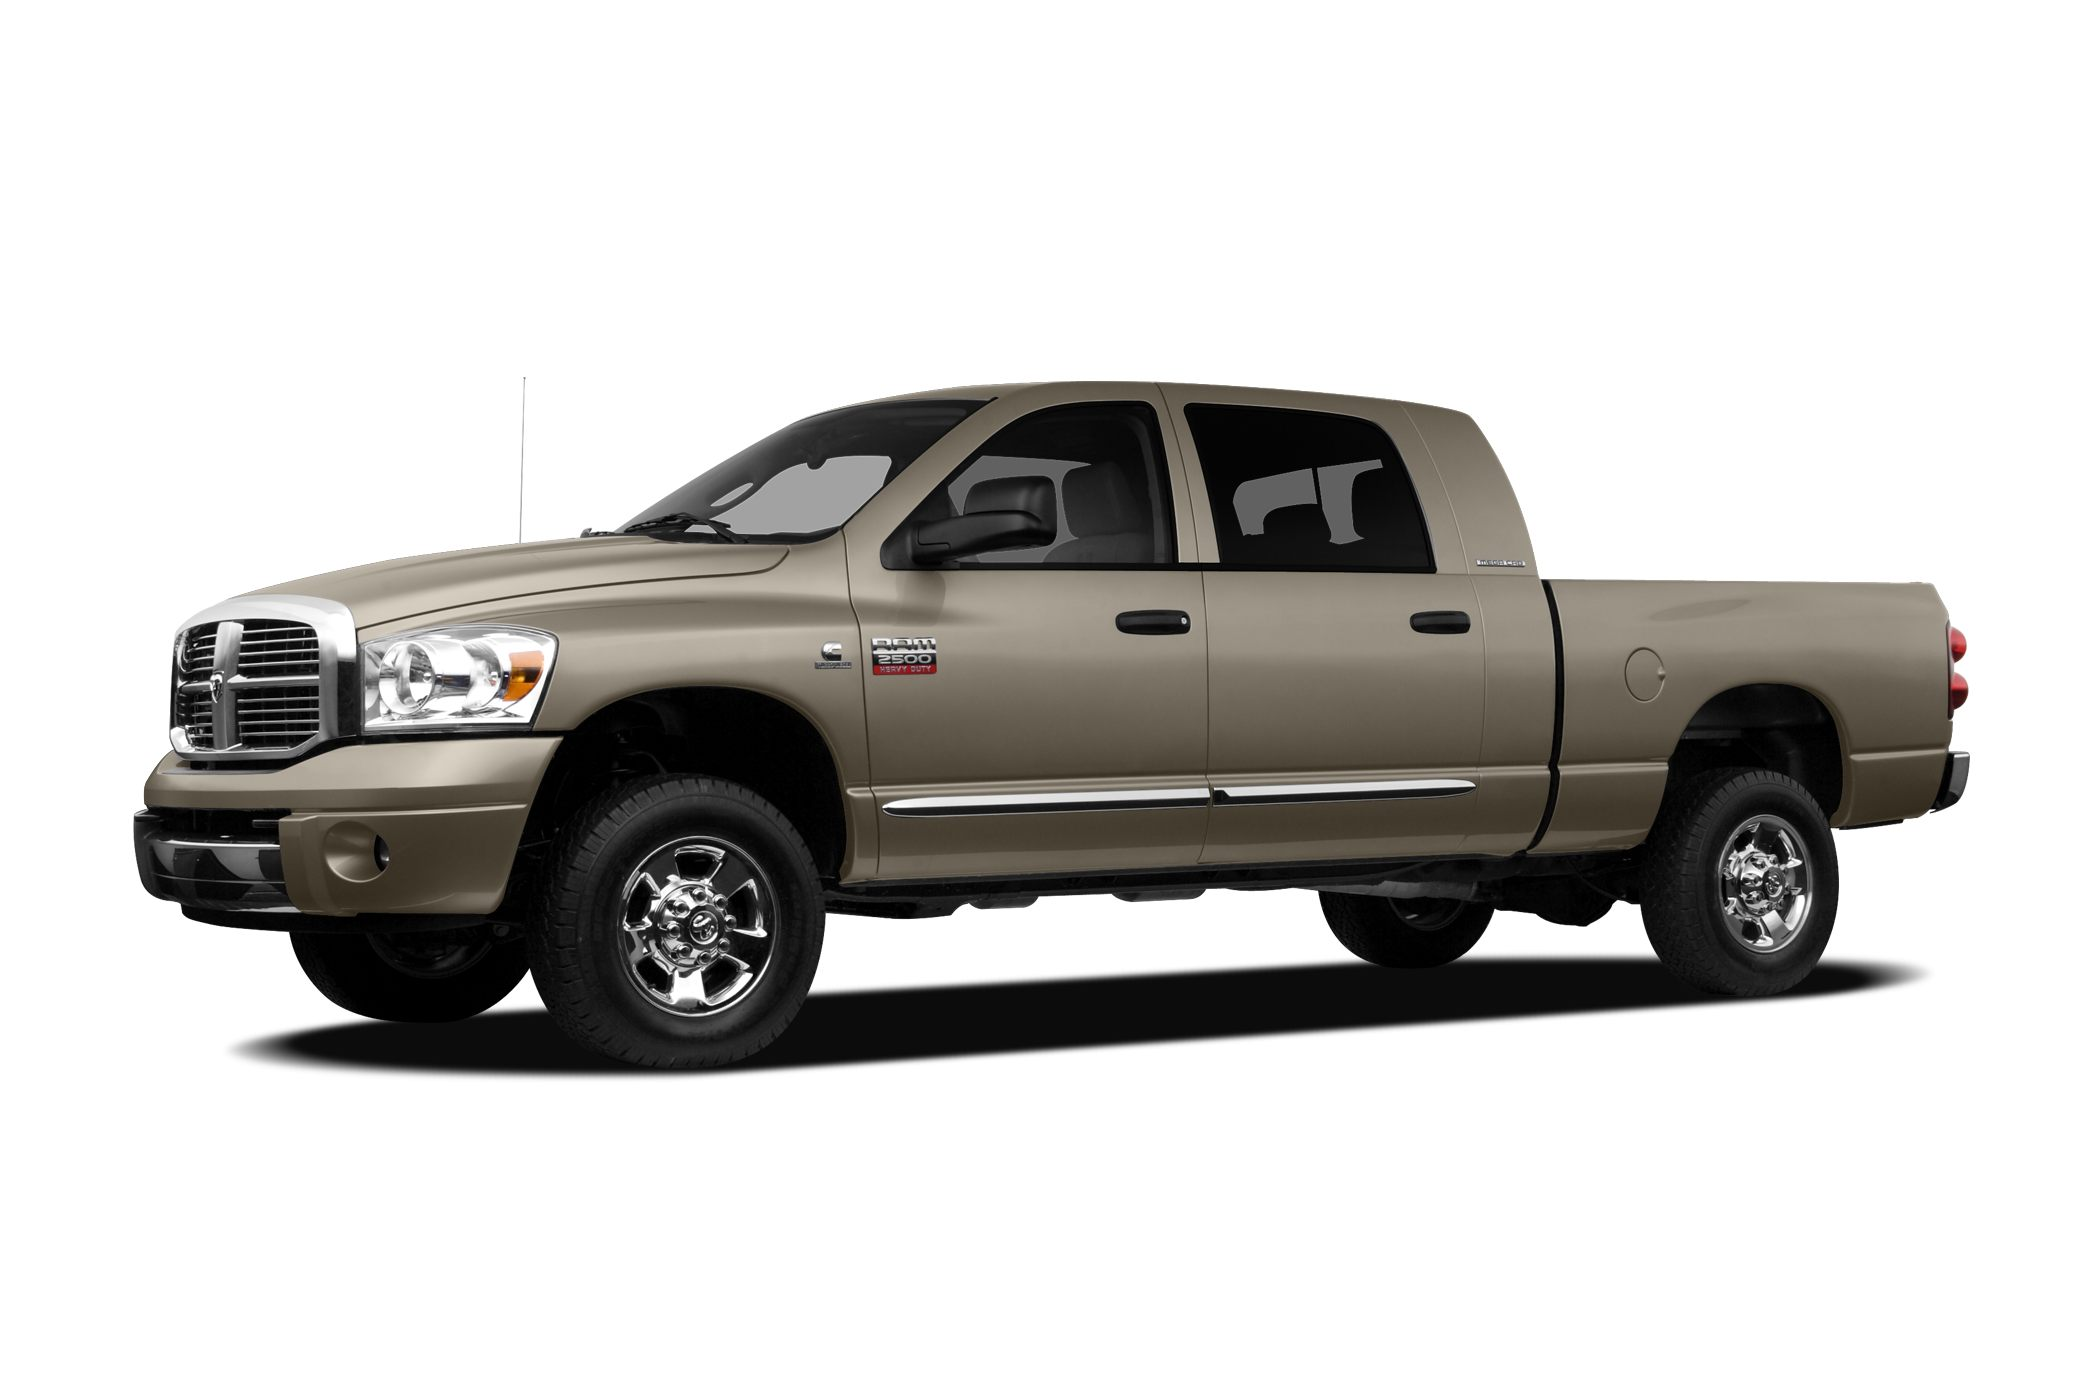 2007 Dodge Ram 2500 SLT SLT trim PRICED TO MOVE 1400 below Kelley Blue Book Excellent Conditio